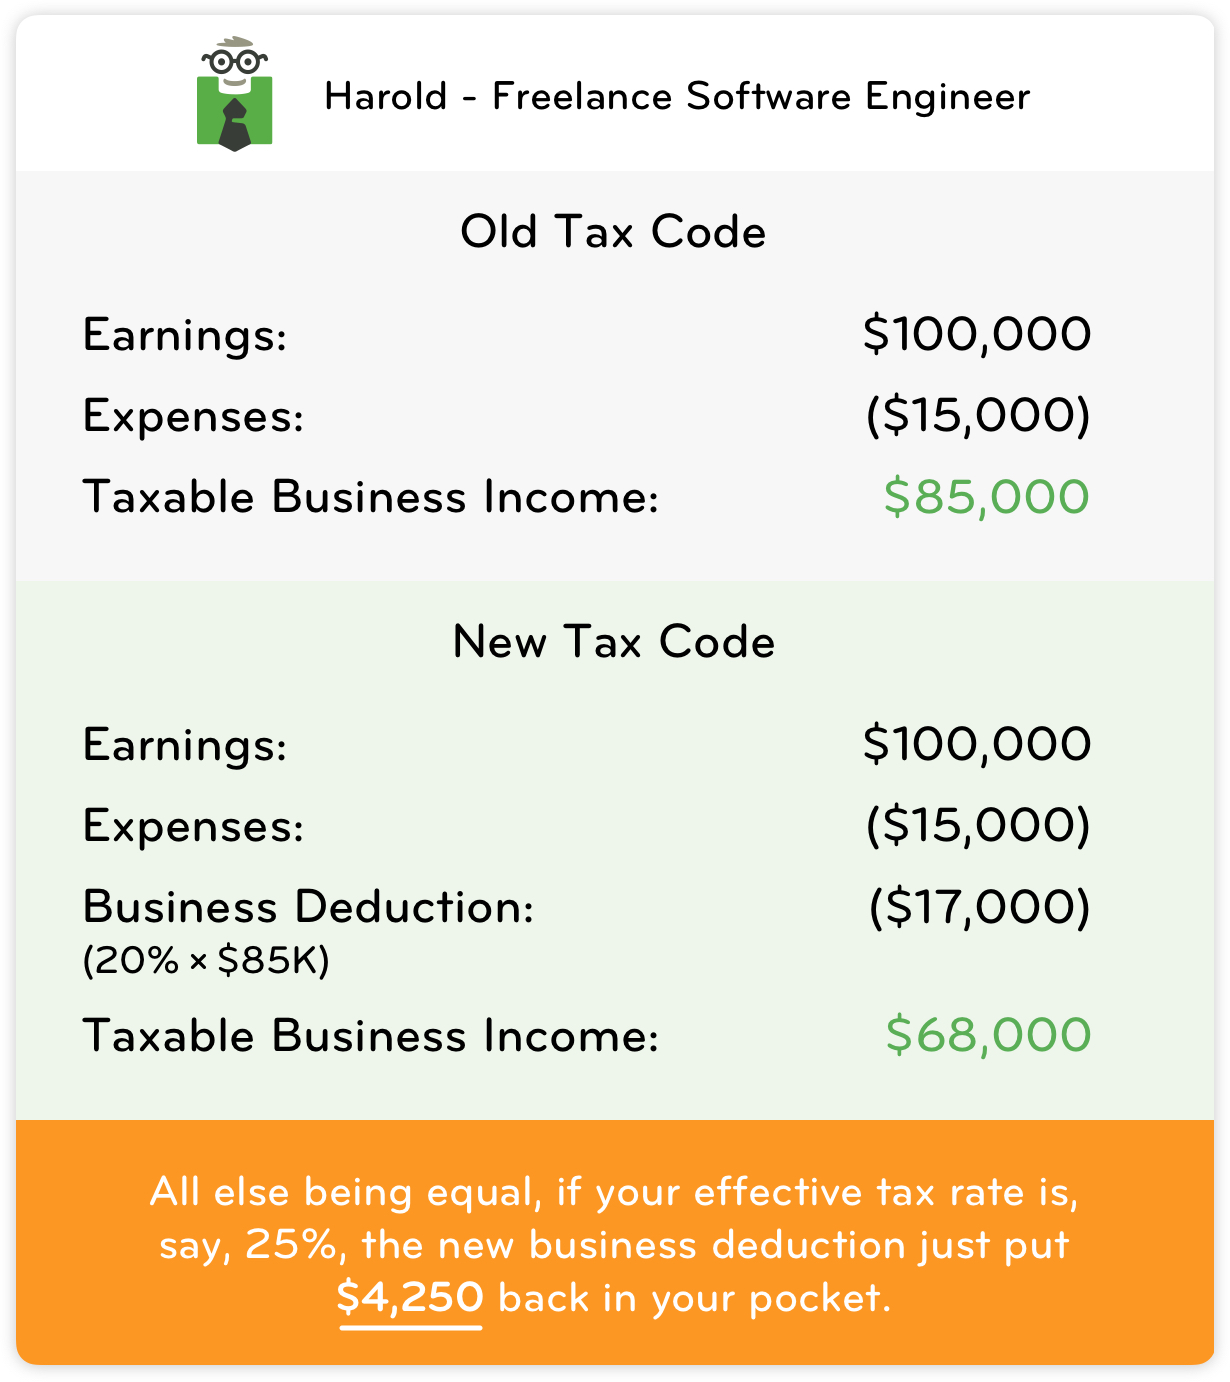 Chart showing a difference in taxable business income between the old tax code and the new tax code